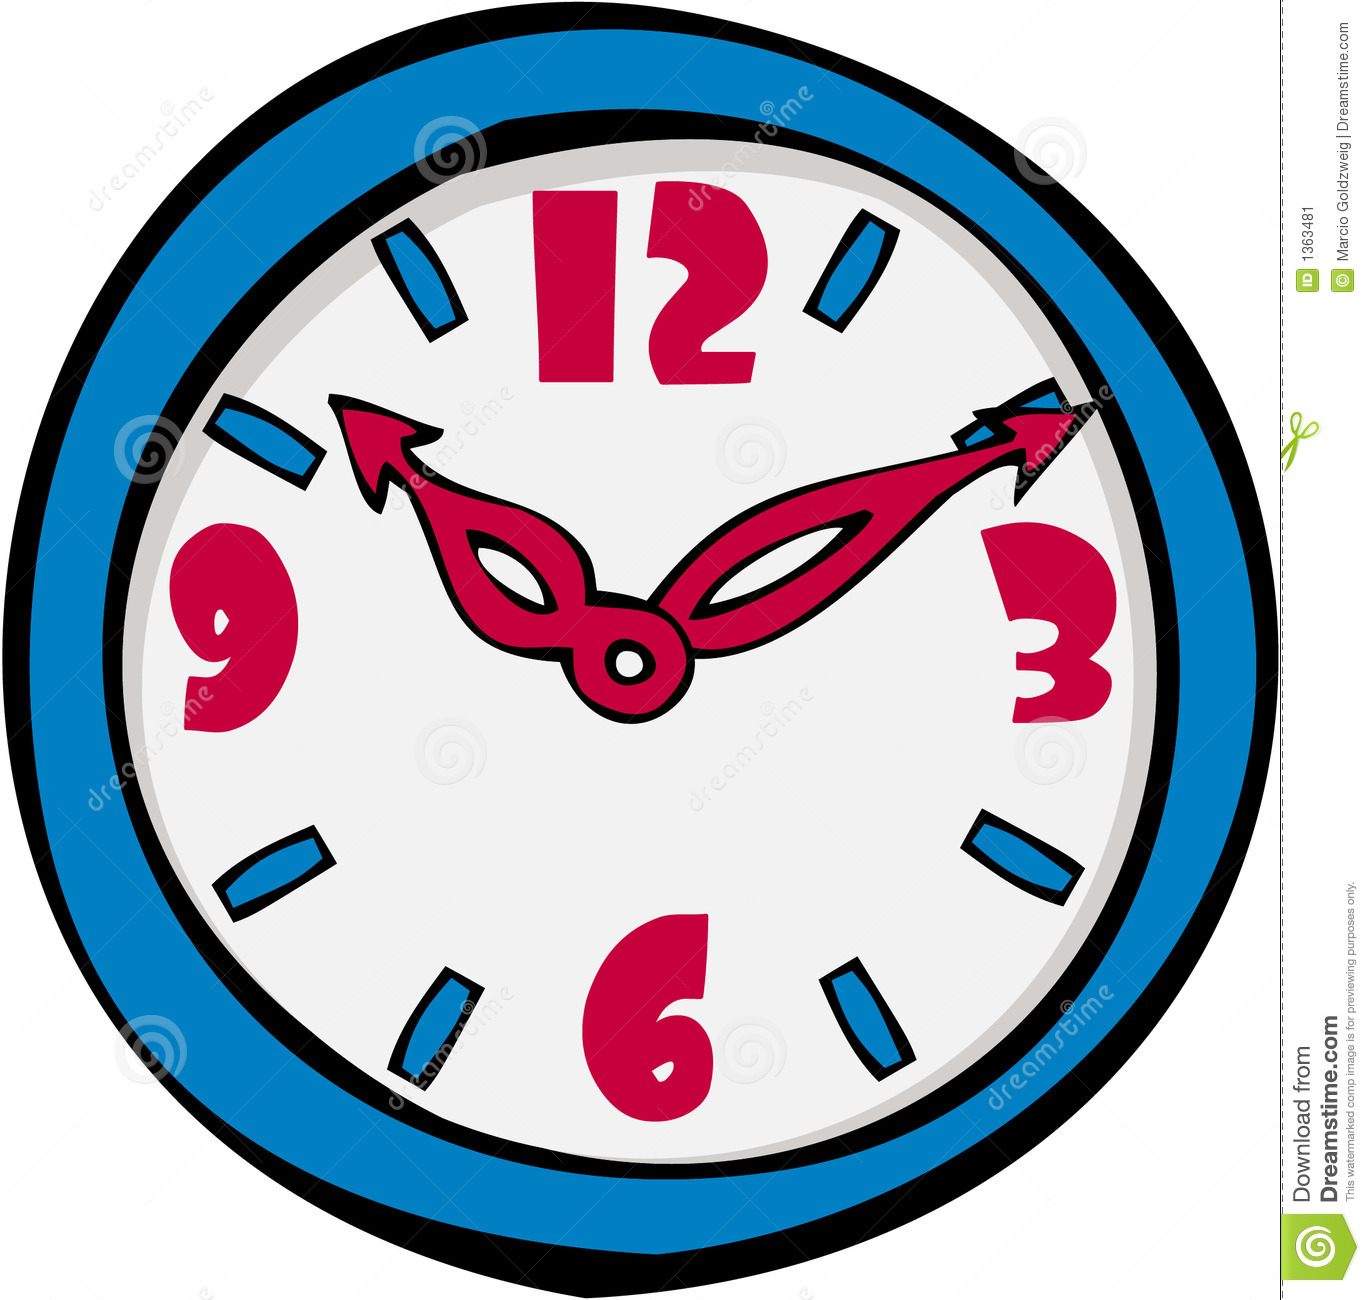 Cartoon Clock Clipart - Clipart Kid